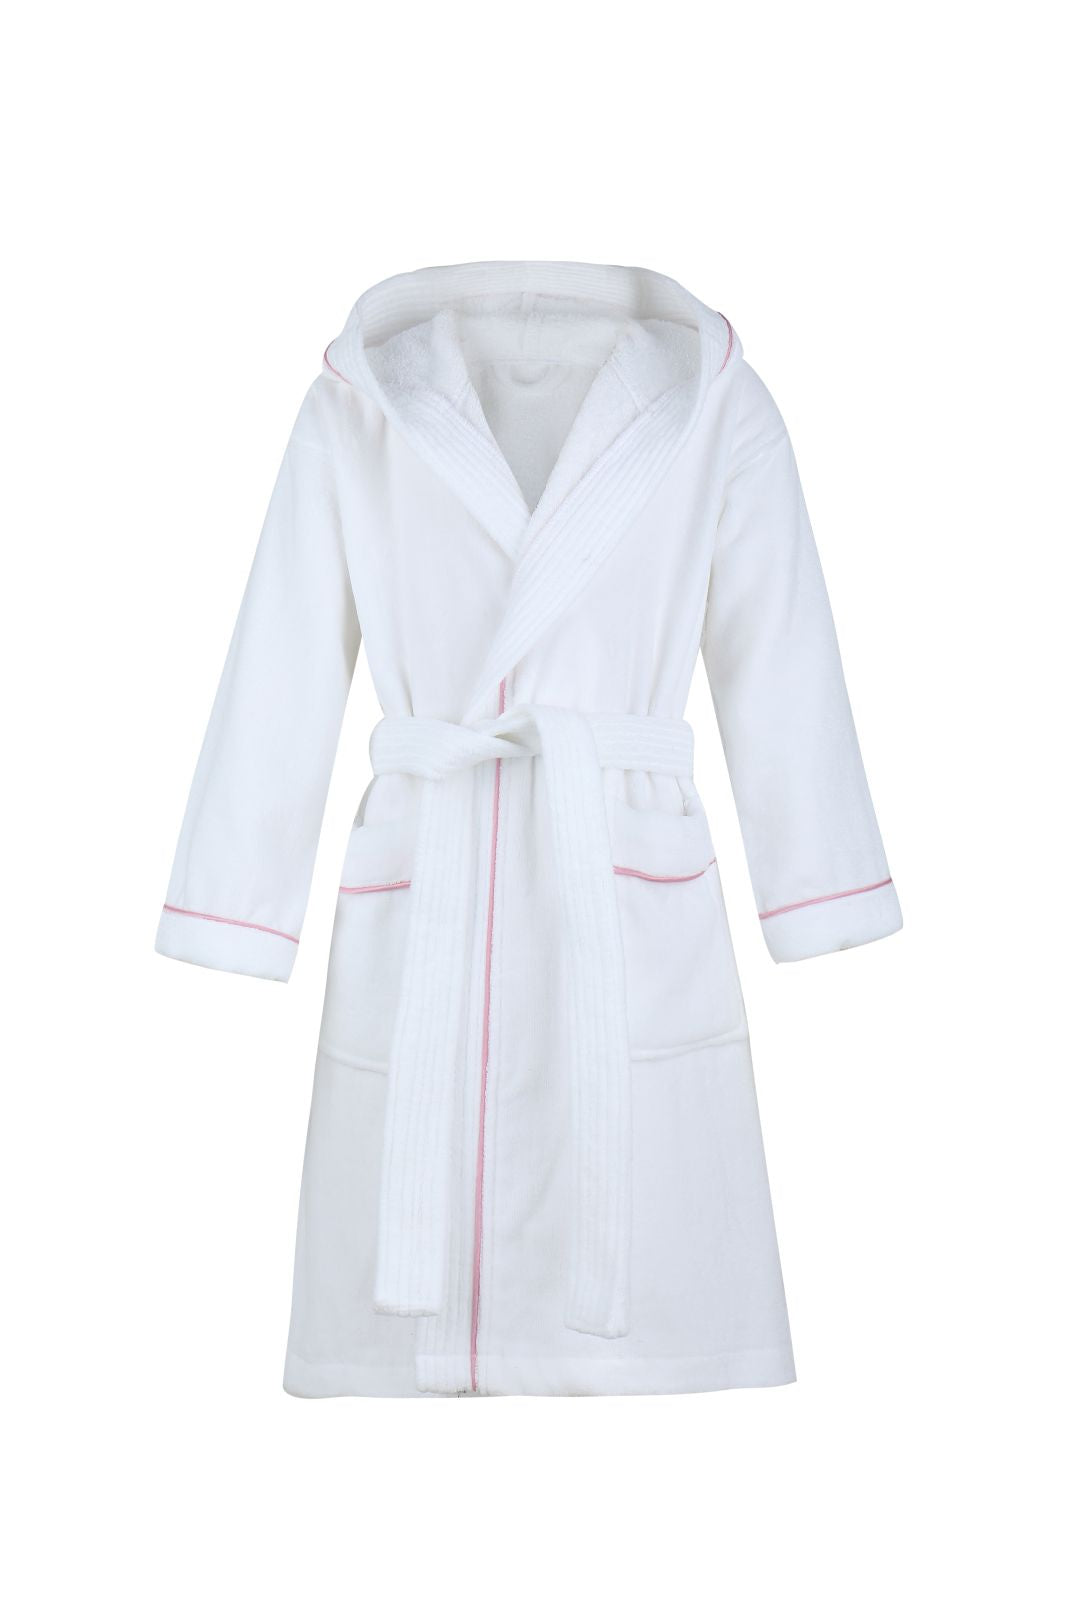 83dfe16e33 Velour Terry Hooded Bathrobe - 100% Cotton - Unisex - White Hotel Pool Spa  Robe Sleepwears Pajamas for Kids